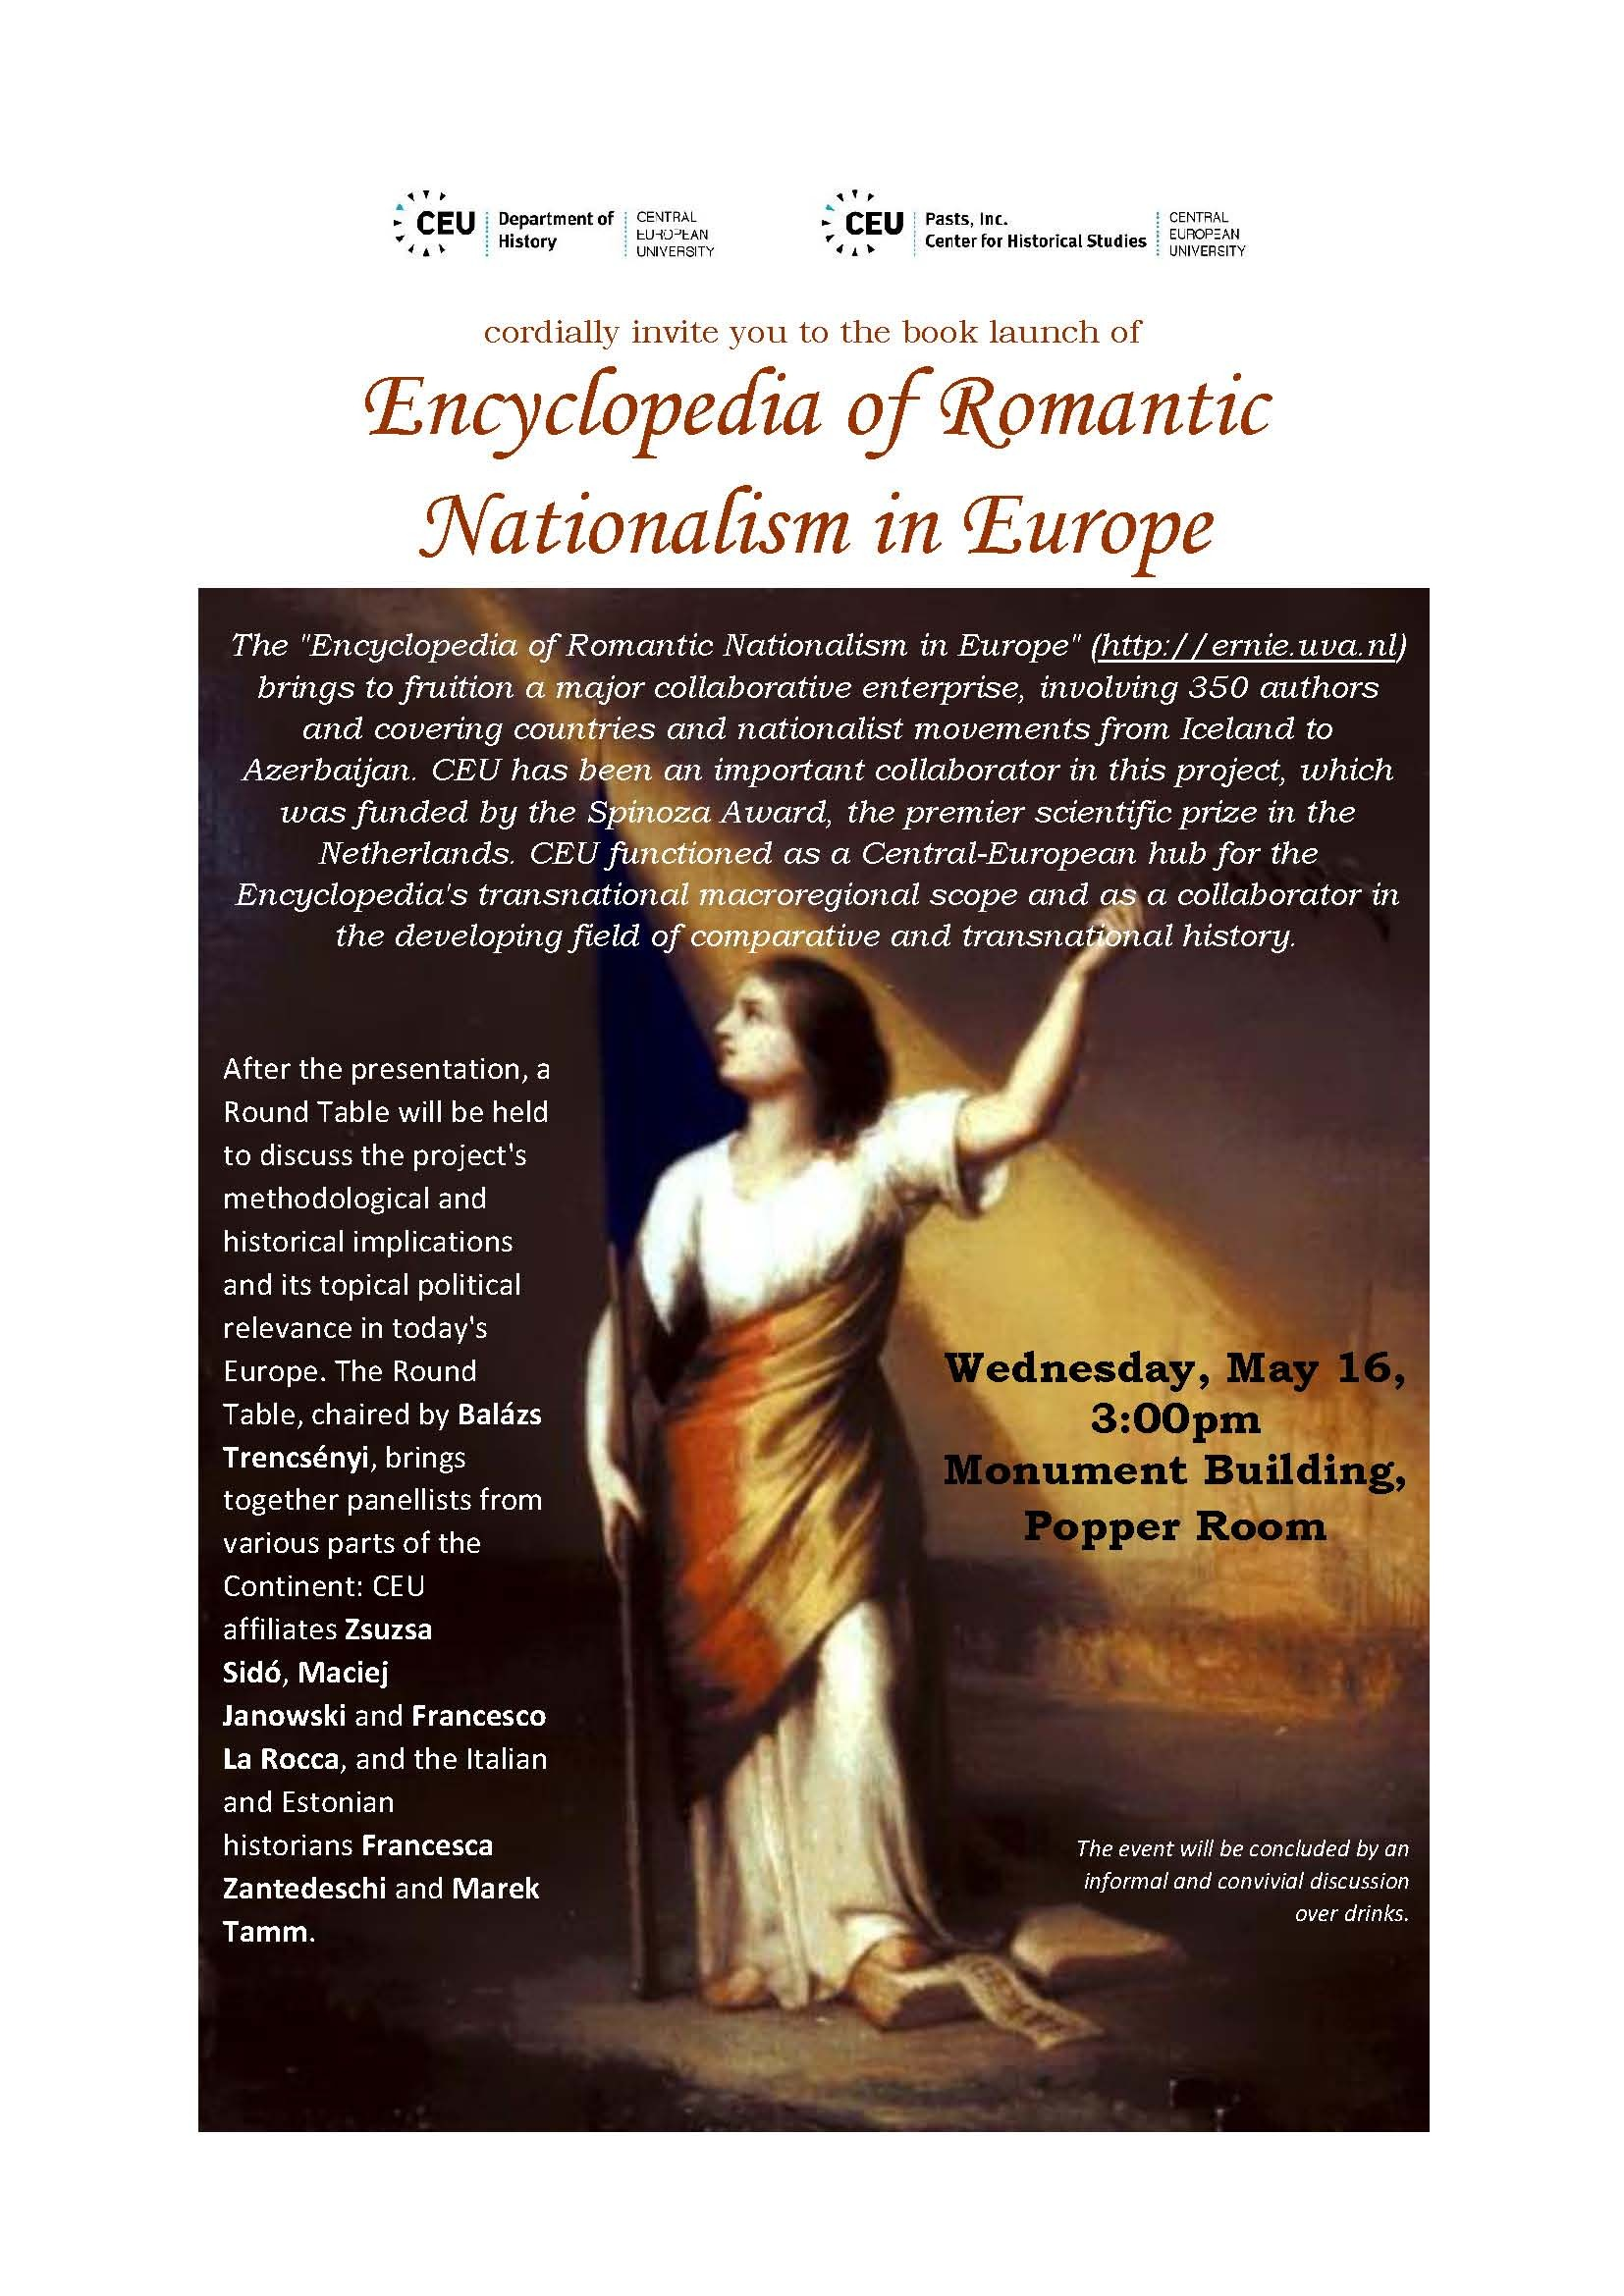 Romantic Nationalism booklaunch poster